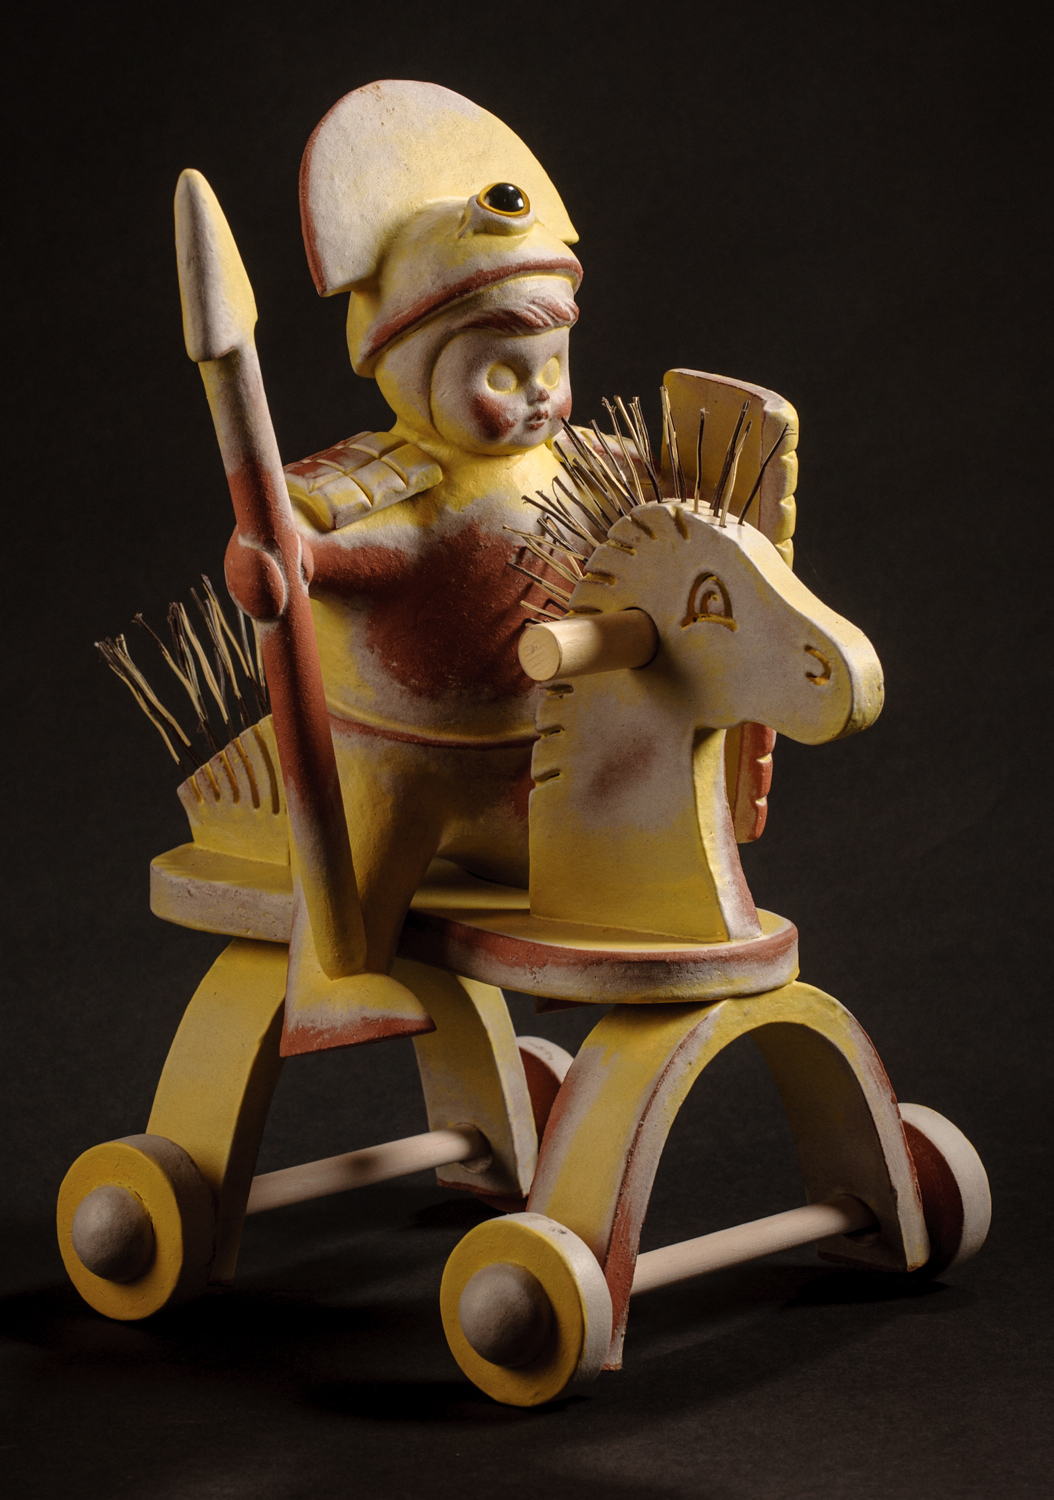 "Mounted Yellow Cyclopean Warrior, glazed & stained terra cotta, acrylic eye, broom straws, 13""h X 9""w X 12""d, 2011"